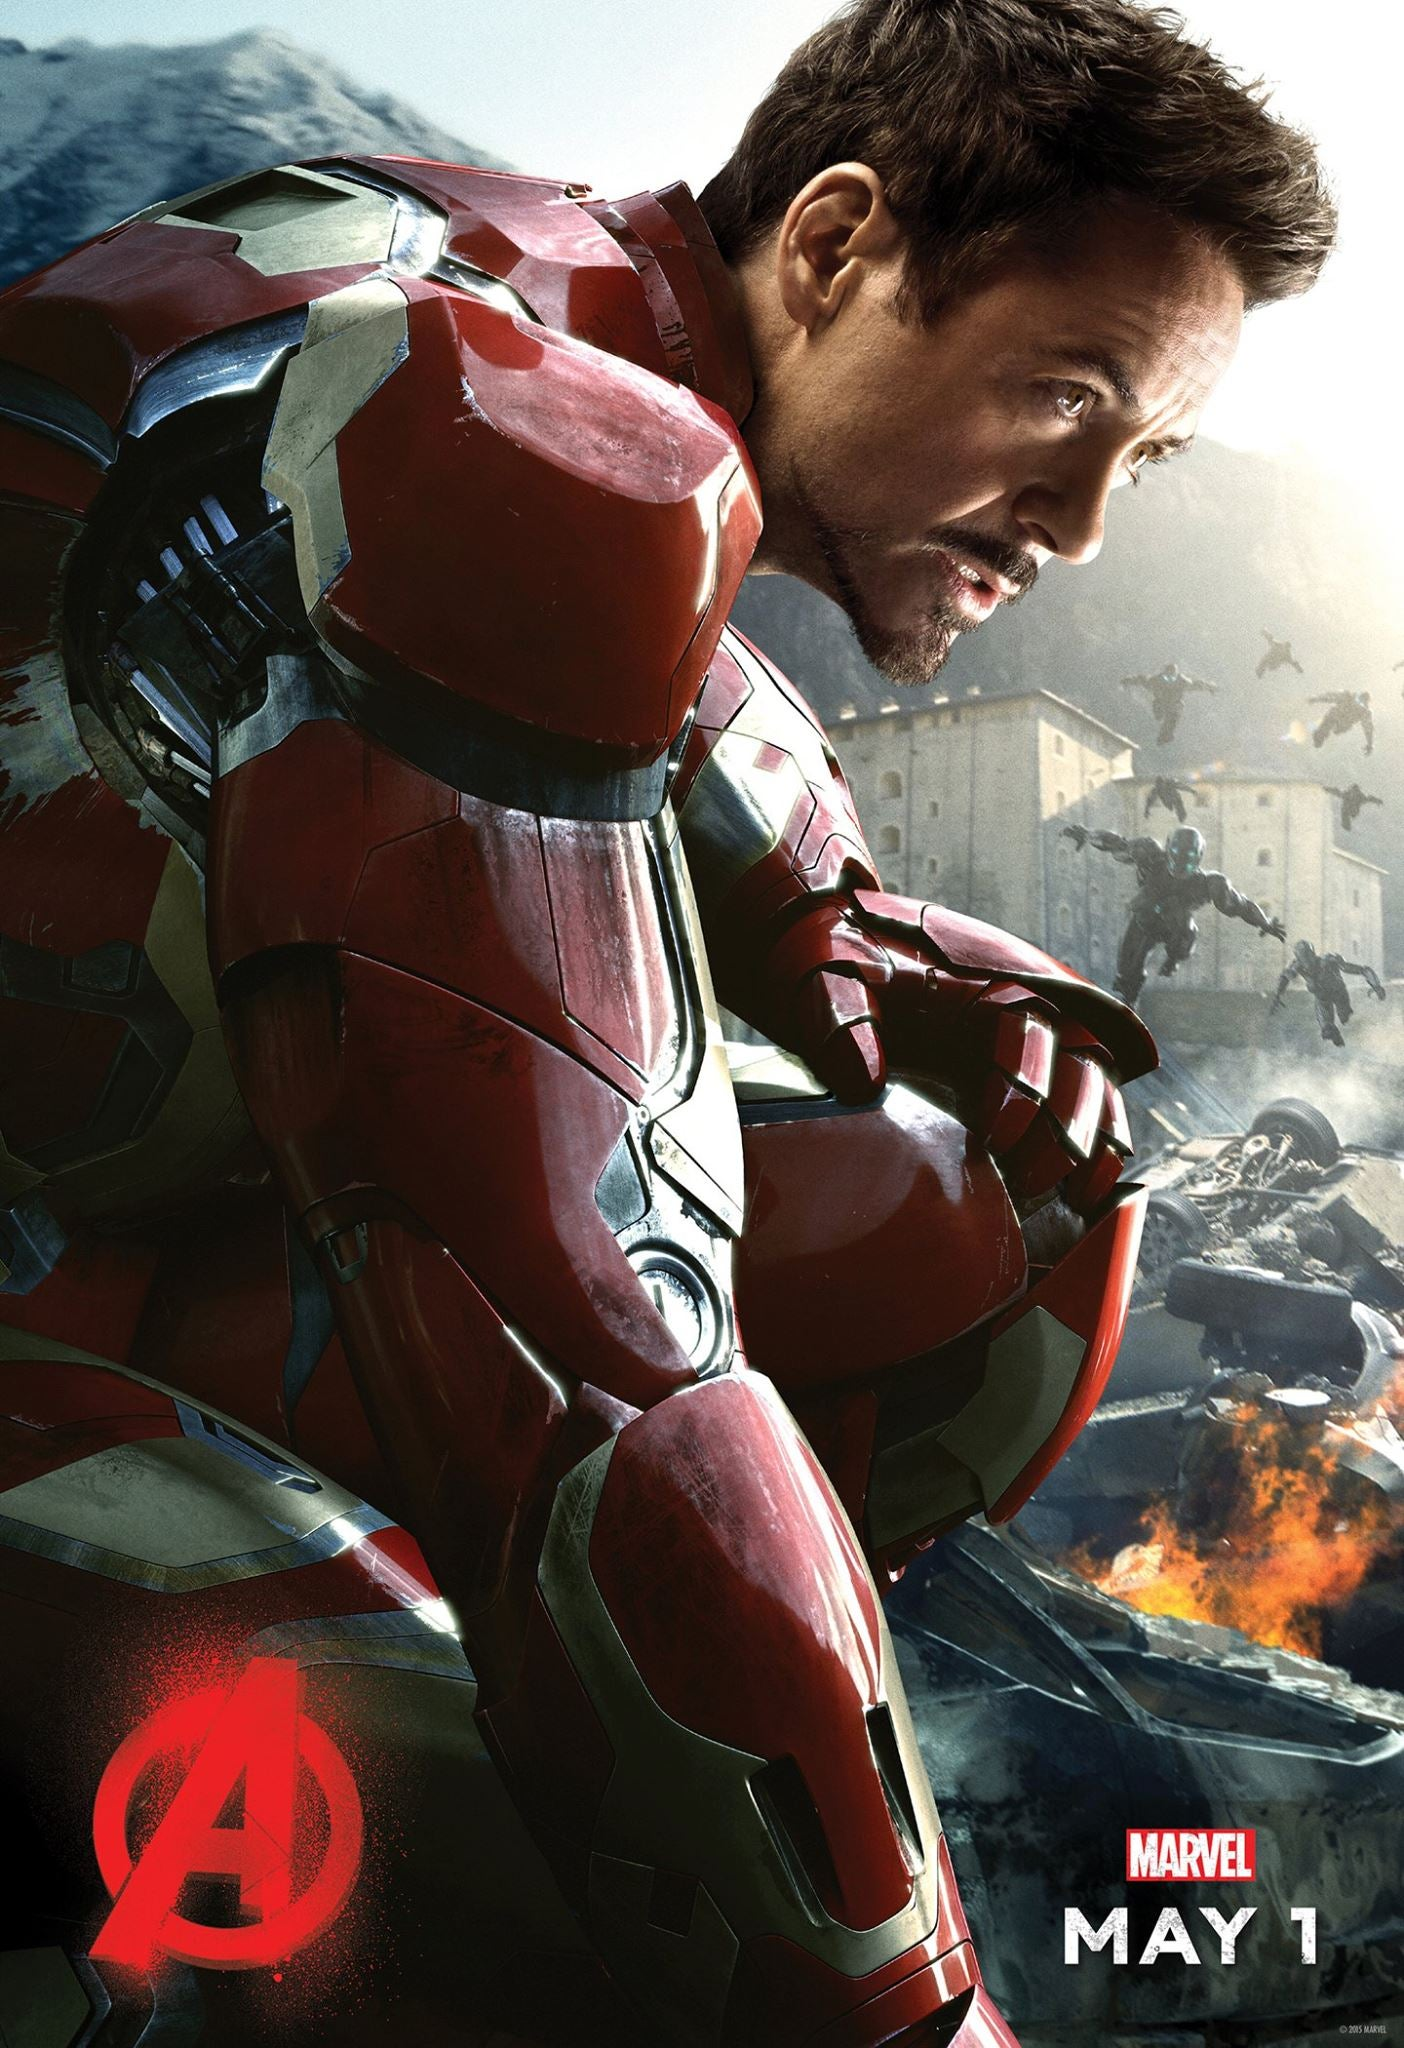 New Avengers: Age Of Ultron Poster, Robert Downey Jr. Teases Big Announcement